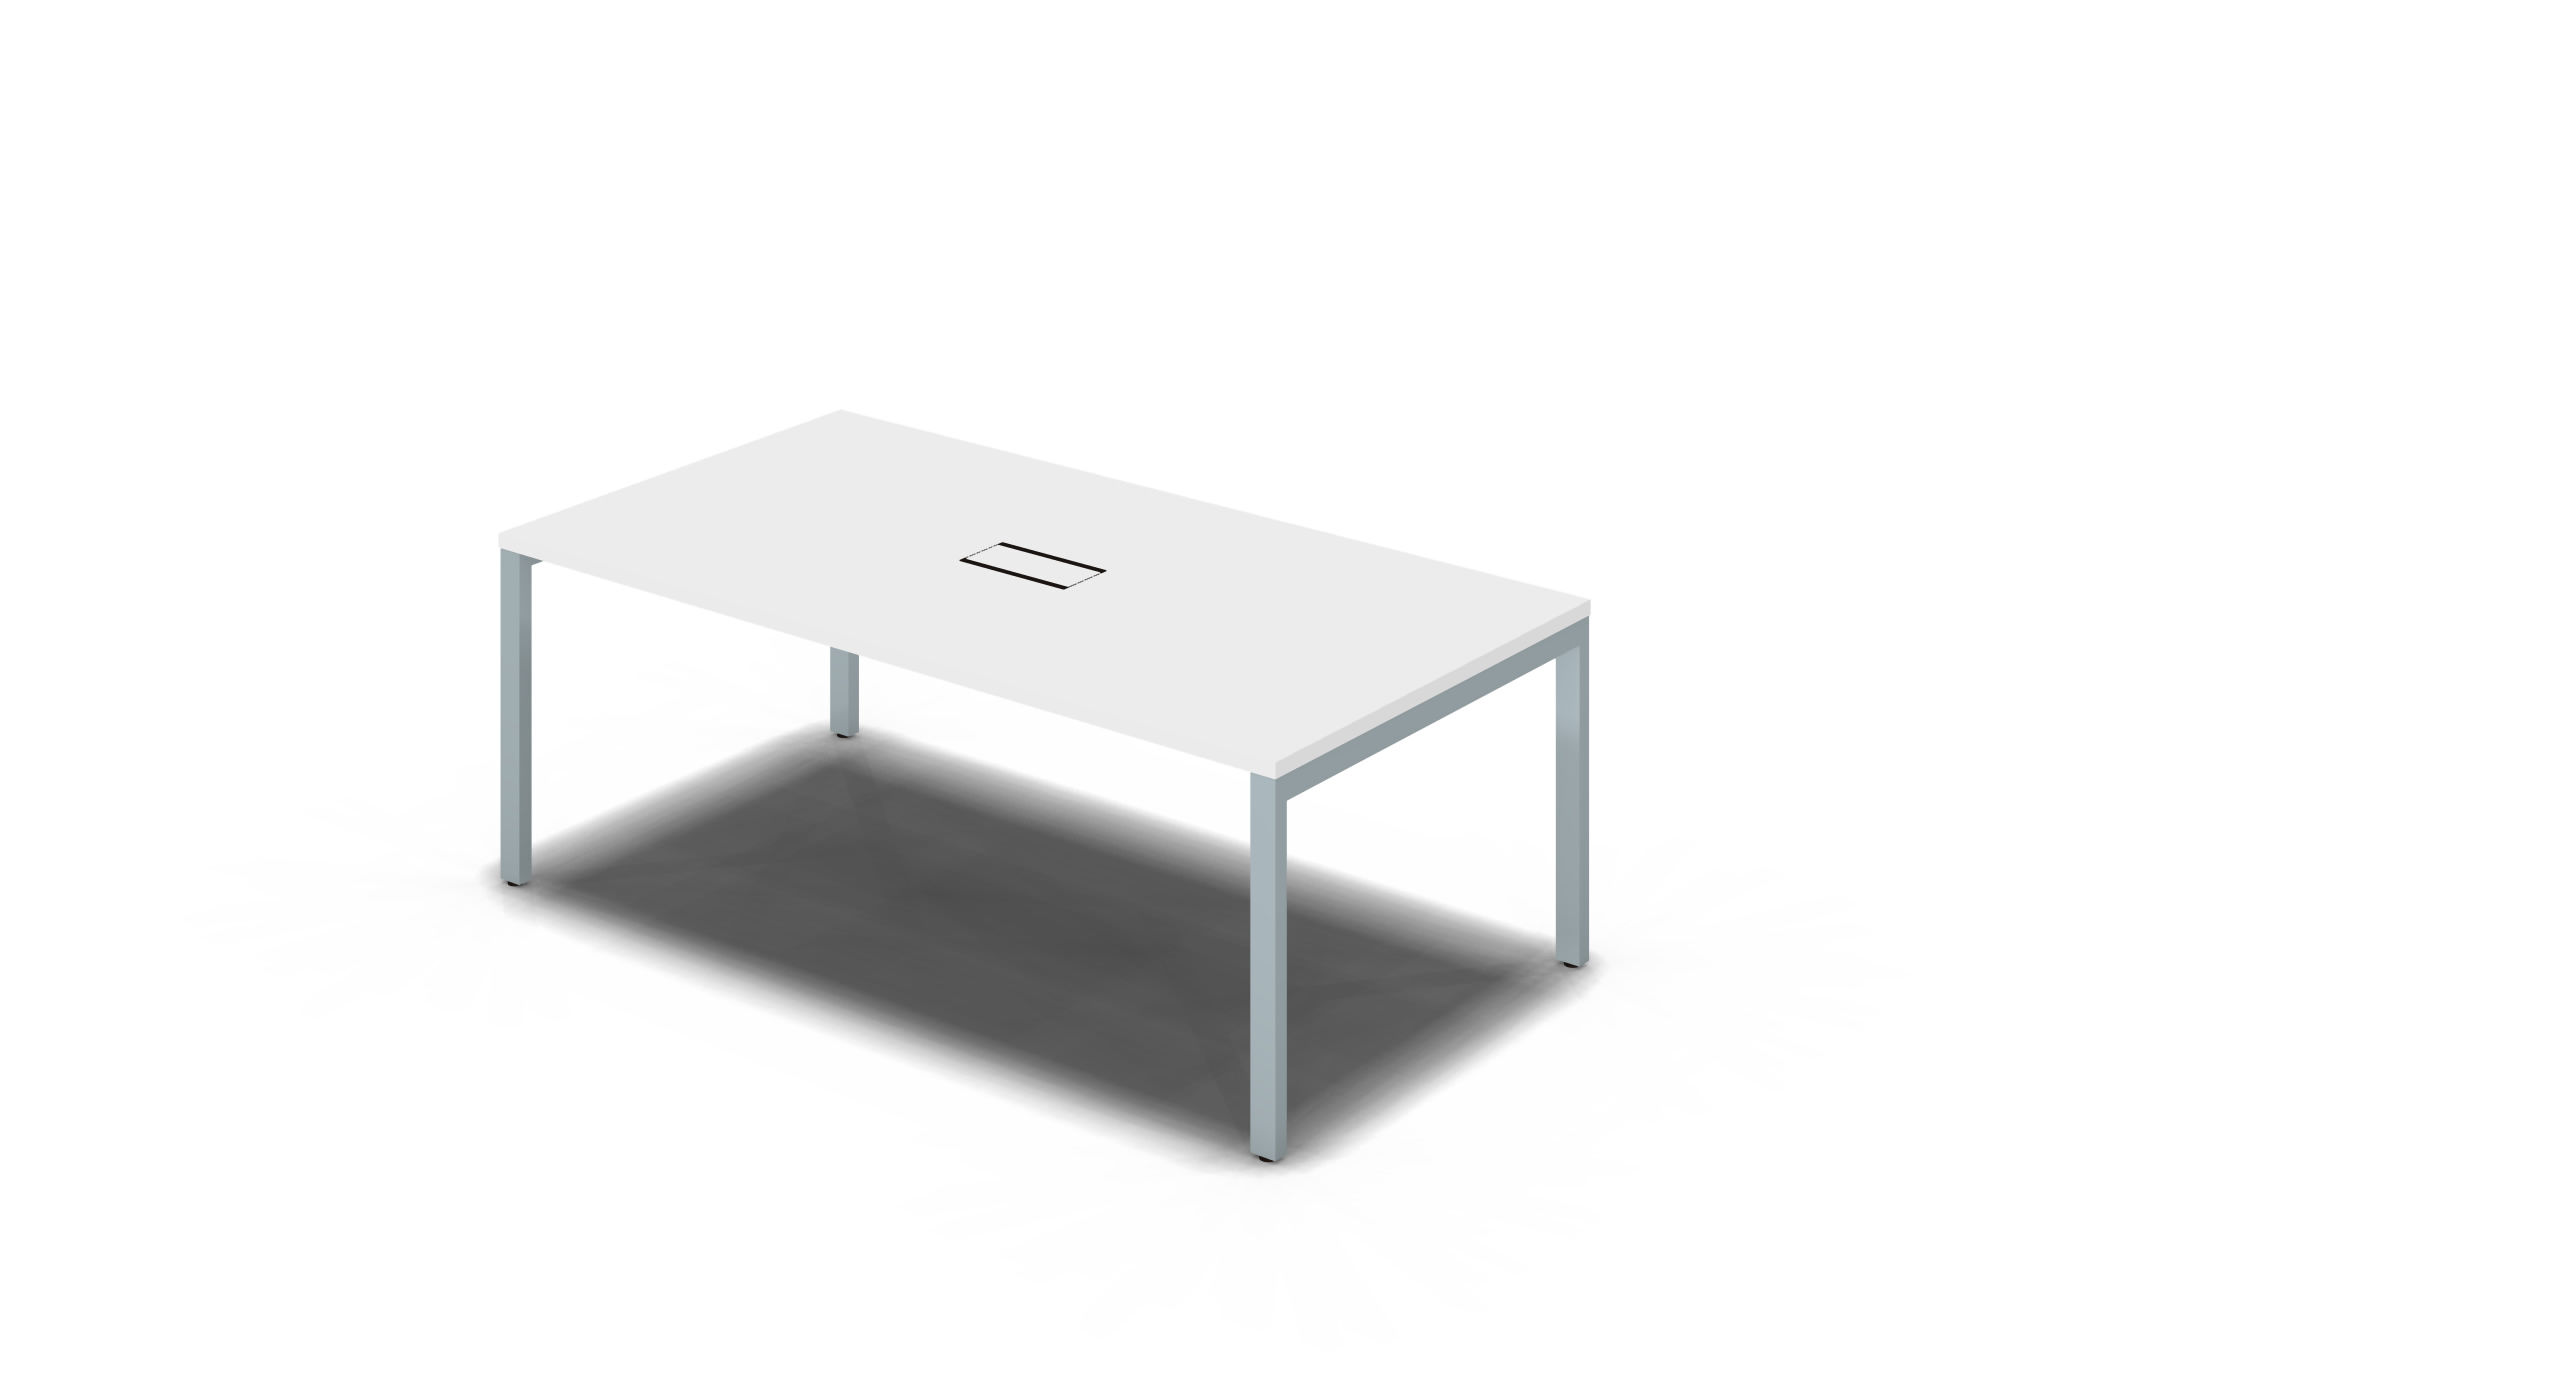 Table_Square_1800x900_Silver_White_withOption